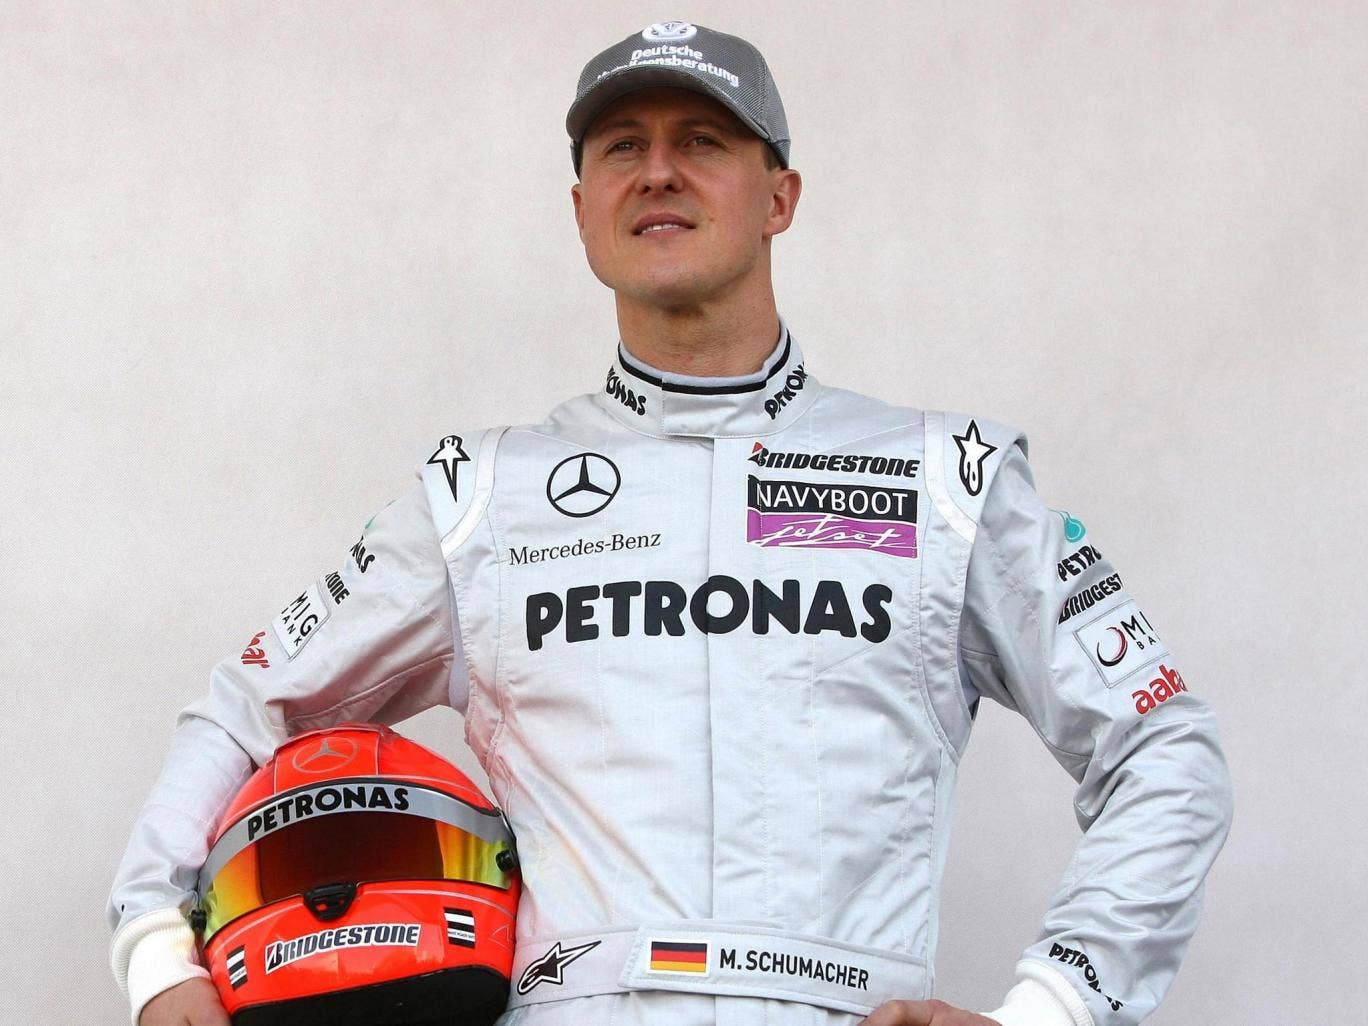 Michael Schumacher in 2010. The seven-times Formula One world champion has now emerged from his coma